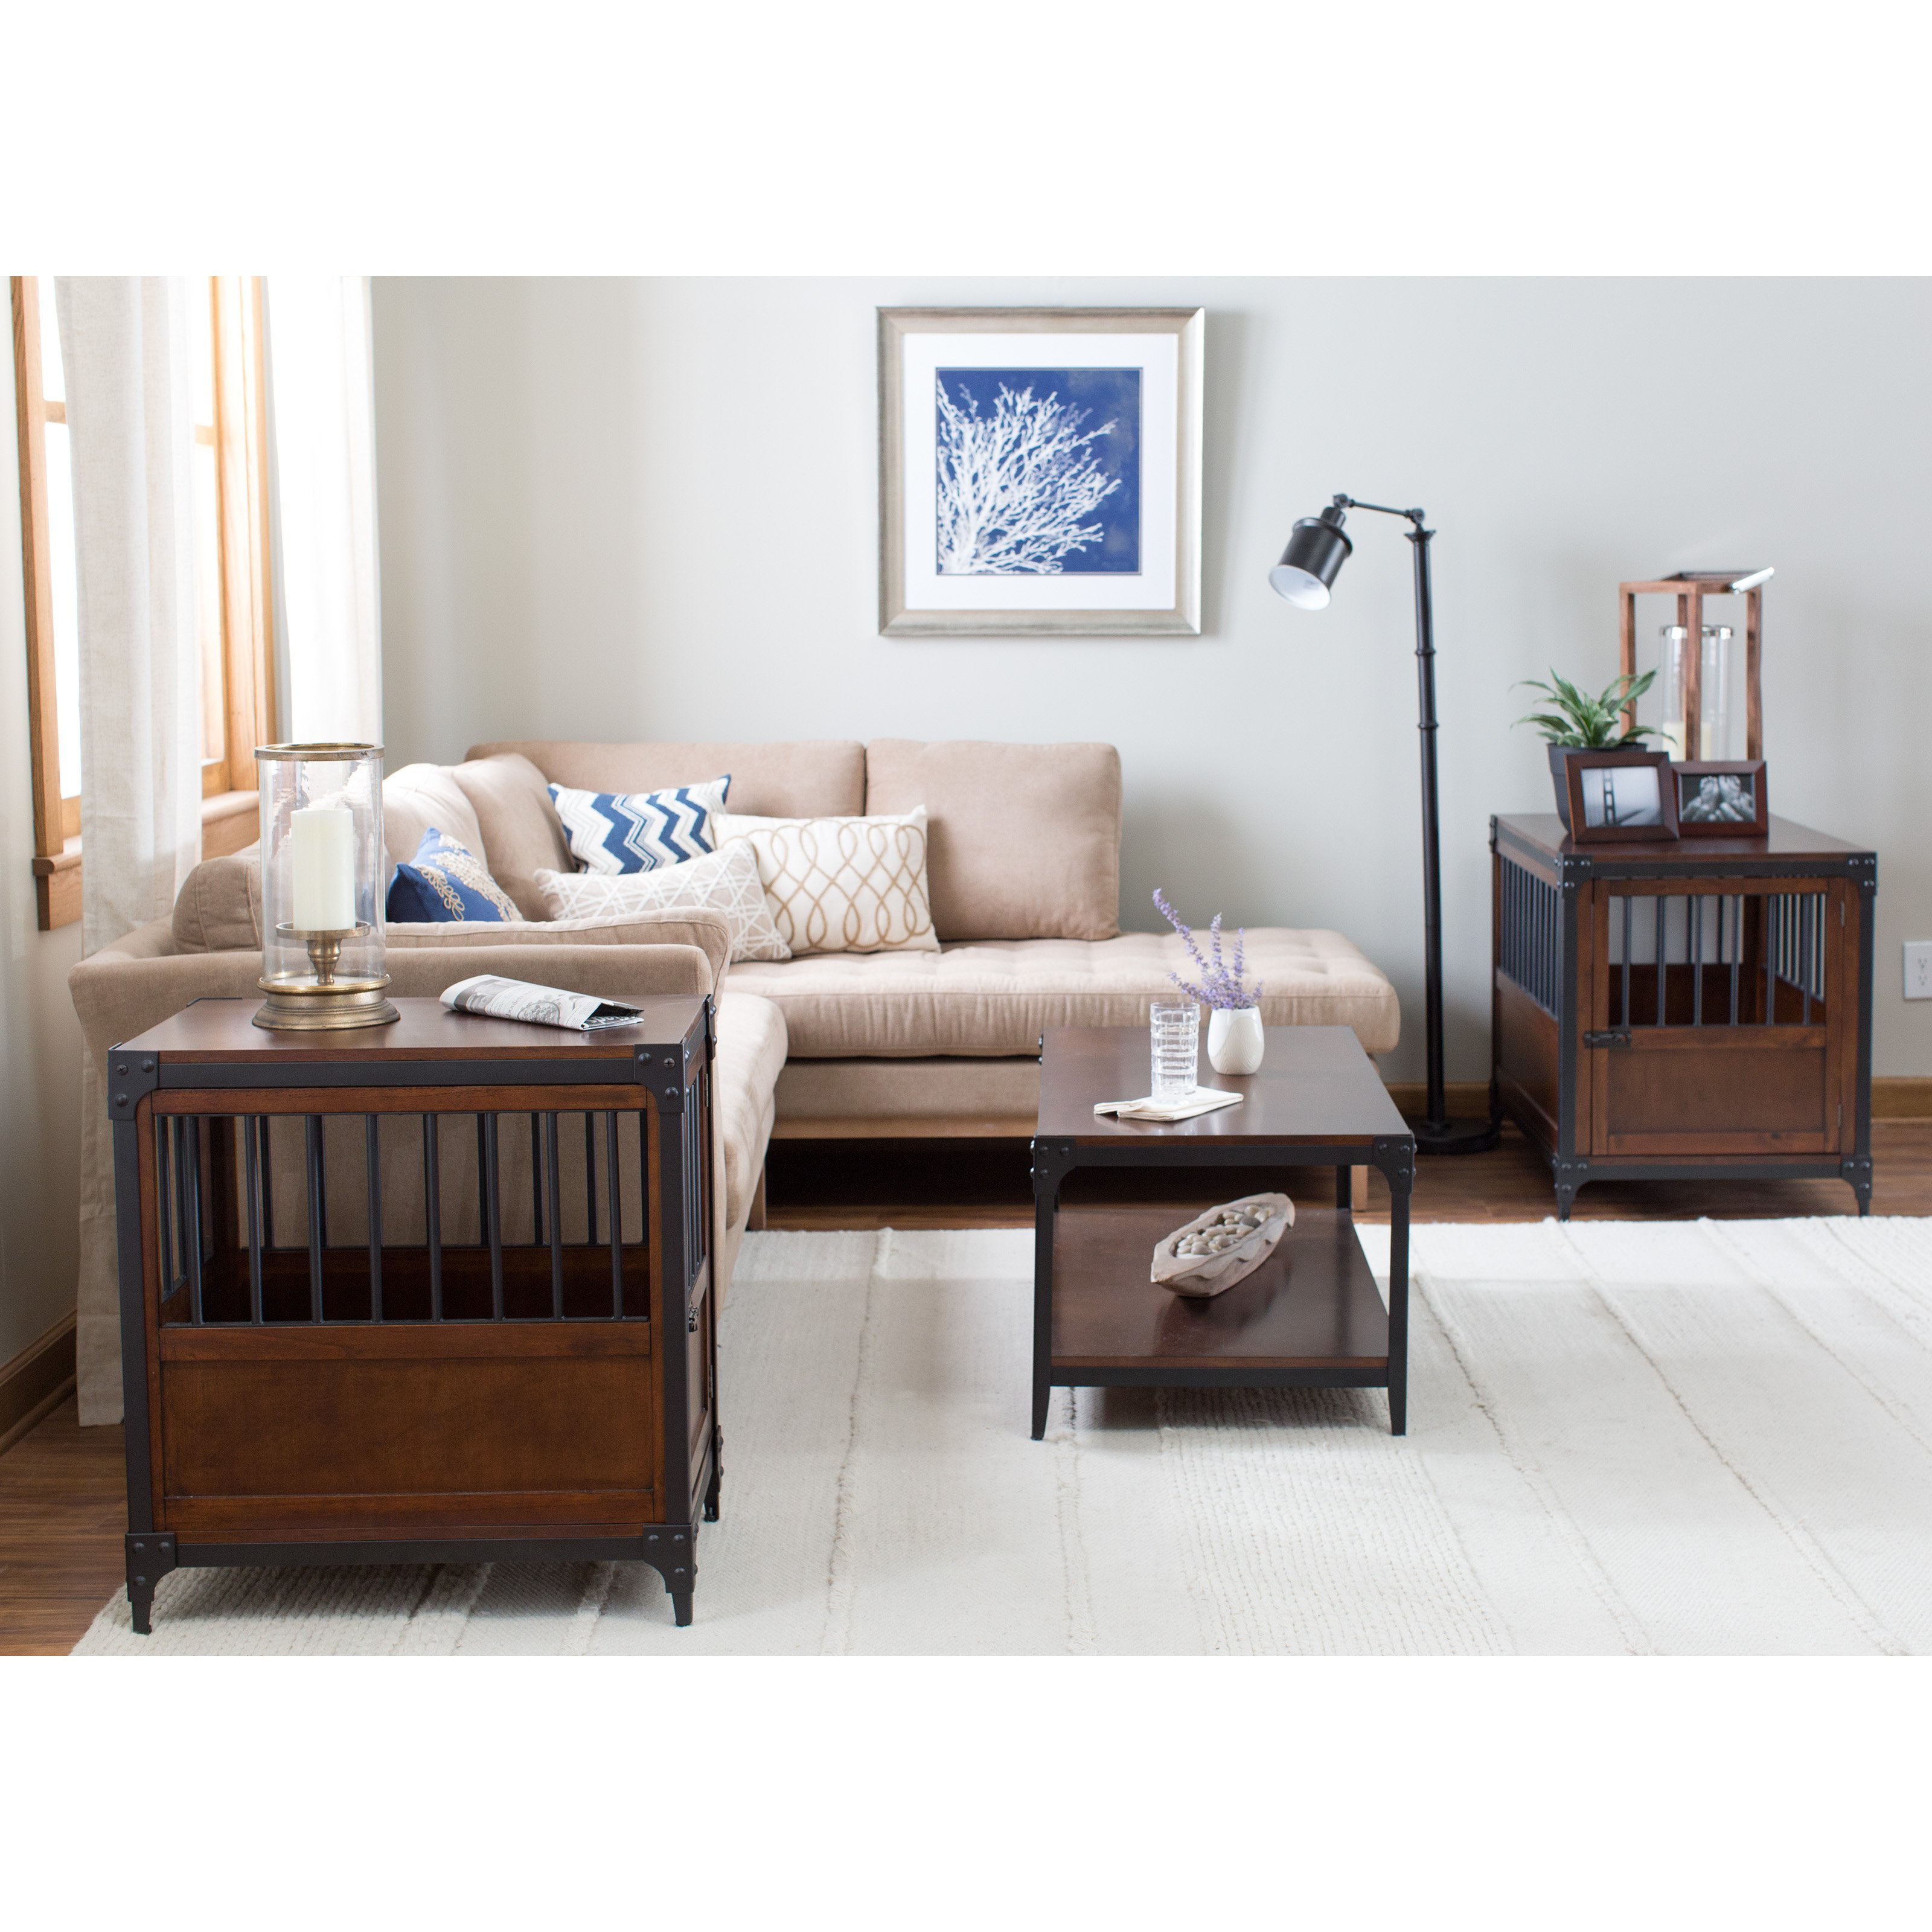 cool end tables probably fantastic awesome newport pet crate boomer george trenton table inuse espresso pottery barn accent ashley cocktail furniture free shipping king sleigh